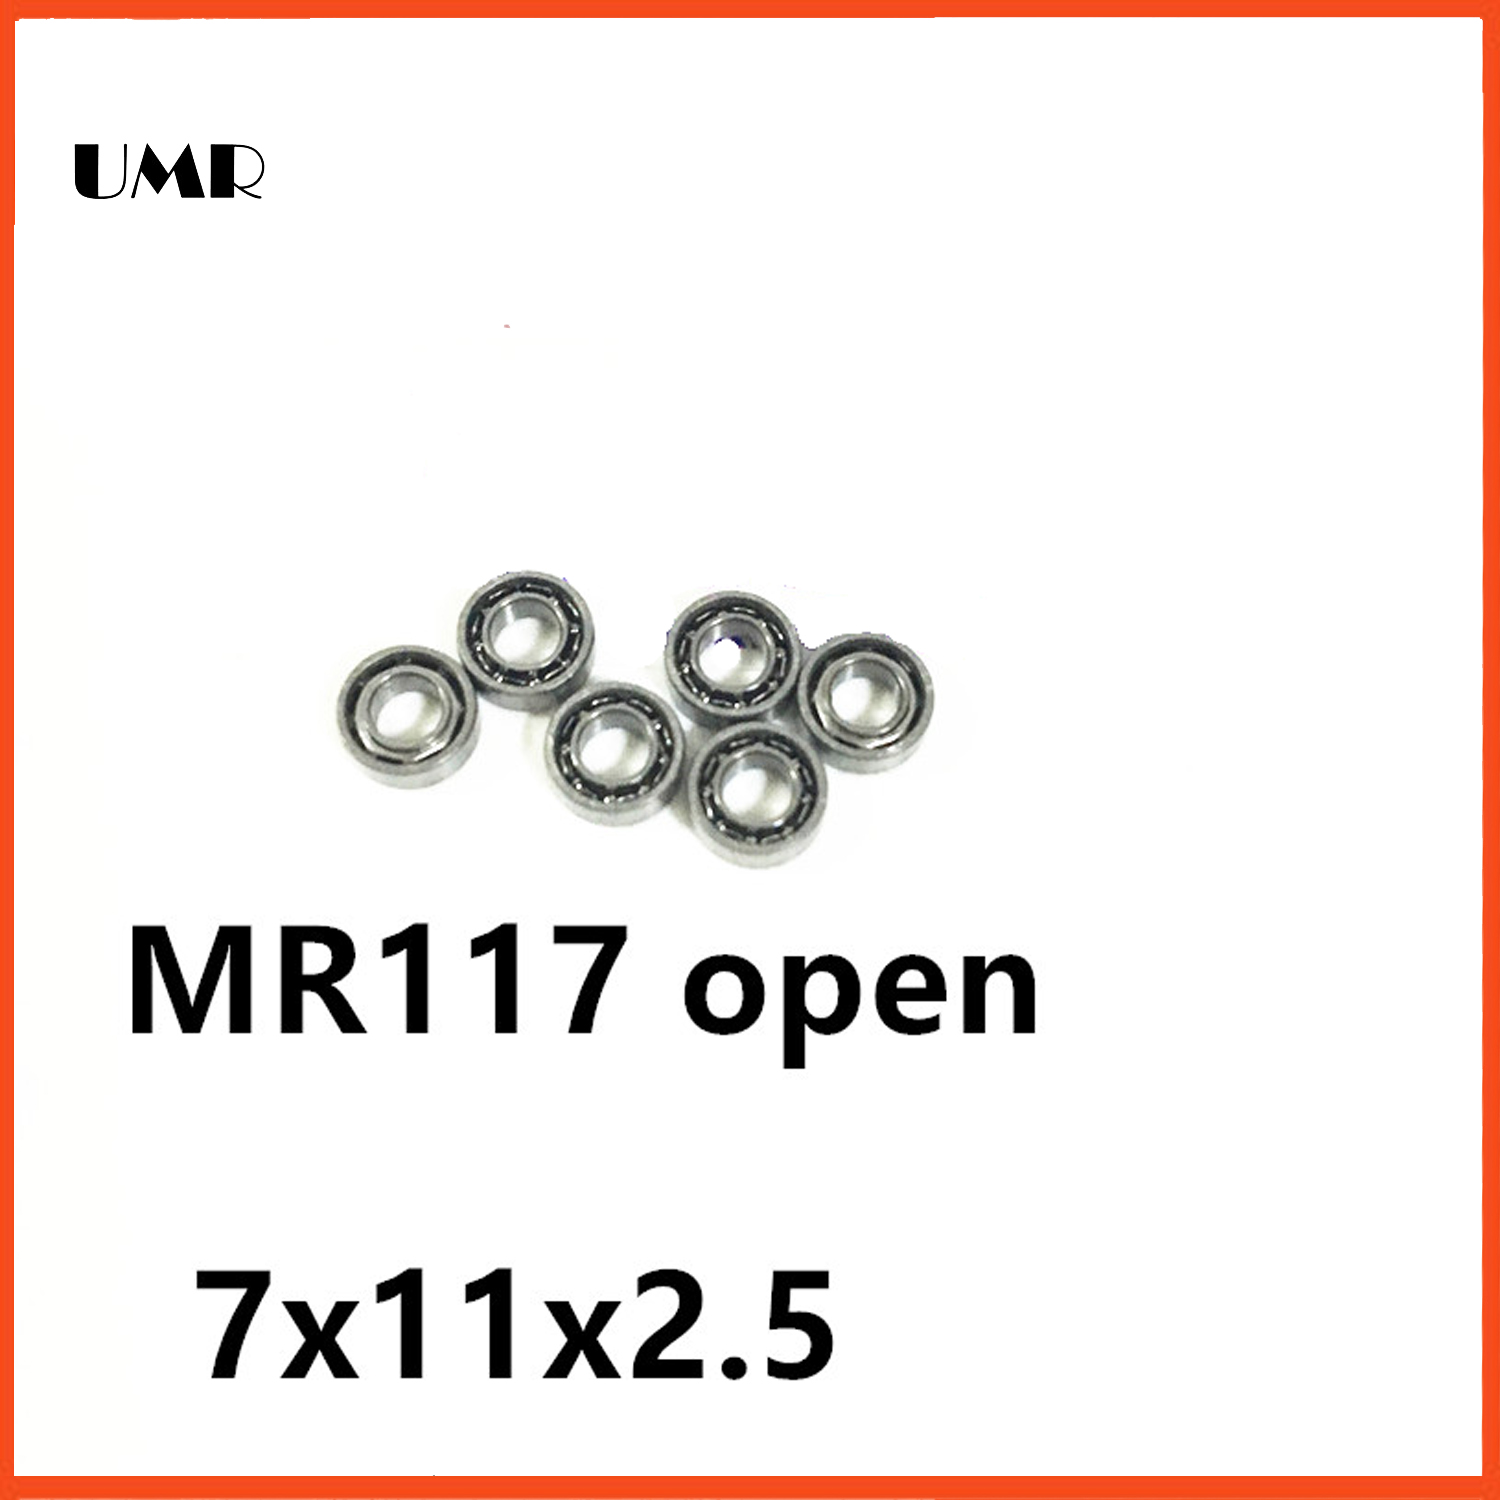 UMR bearings MR117 Bearing ABEC-1  7X11X2.5 mm Miniature MR117- Open Ball Bearings MR117 677 617/7 7*11*2.5 mm 1pcs 71901 71901cd p4 7901 12x24x6 mochu thin walled miniature angular contact bearings speed spindle bearings cnc abec 7